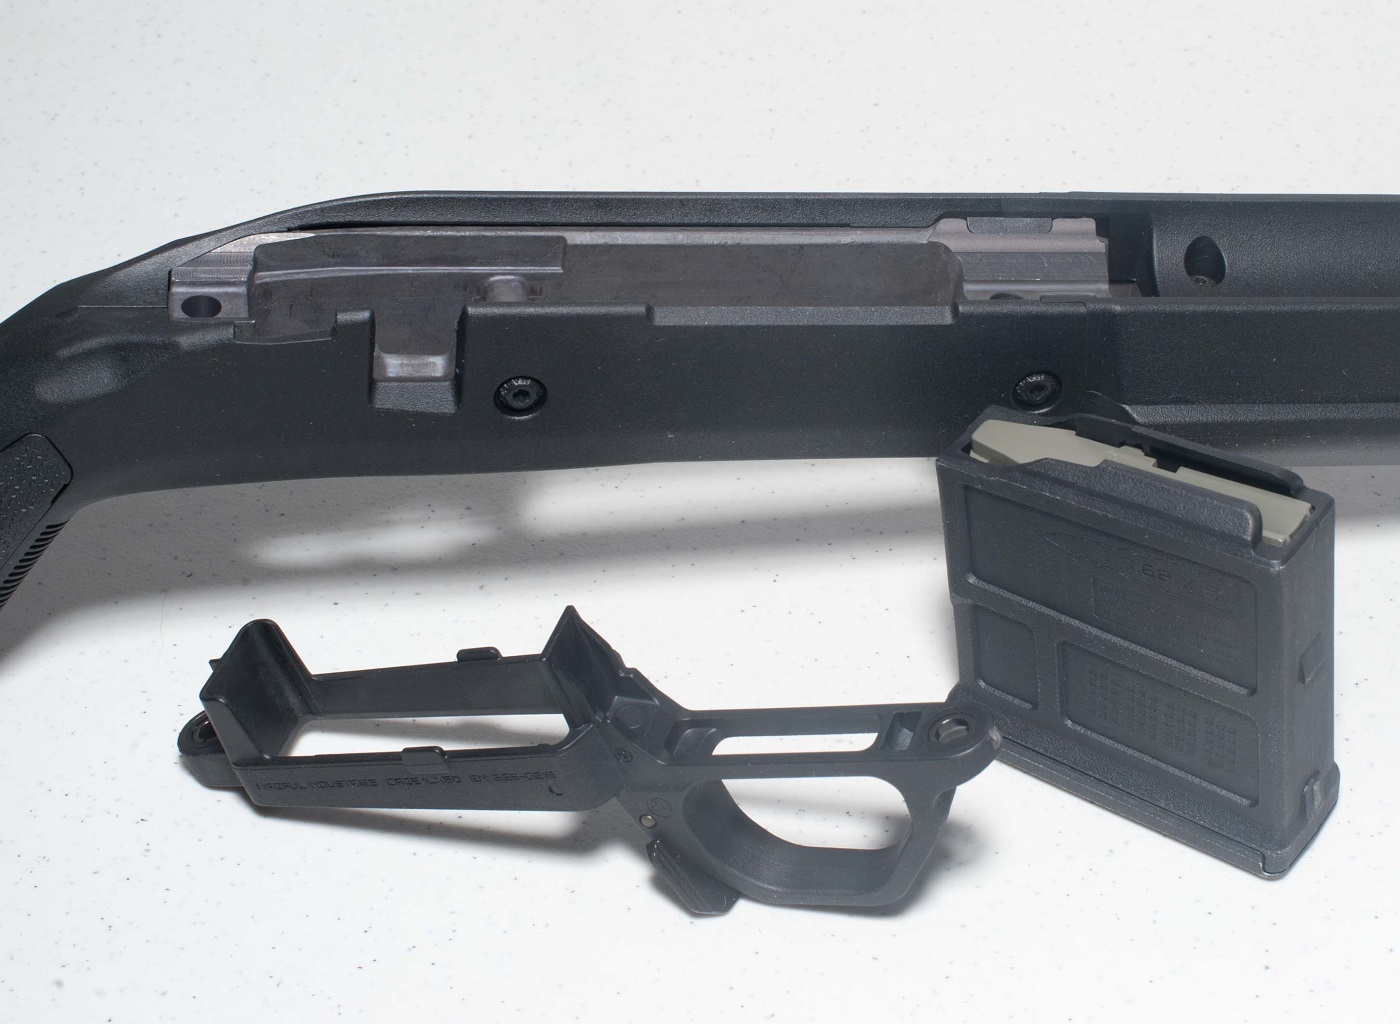 Review: Magpul Hunter 700 and Magazine Well | OutdoorHub